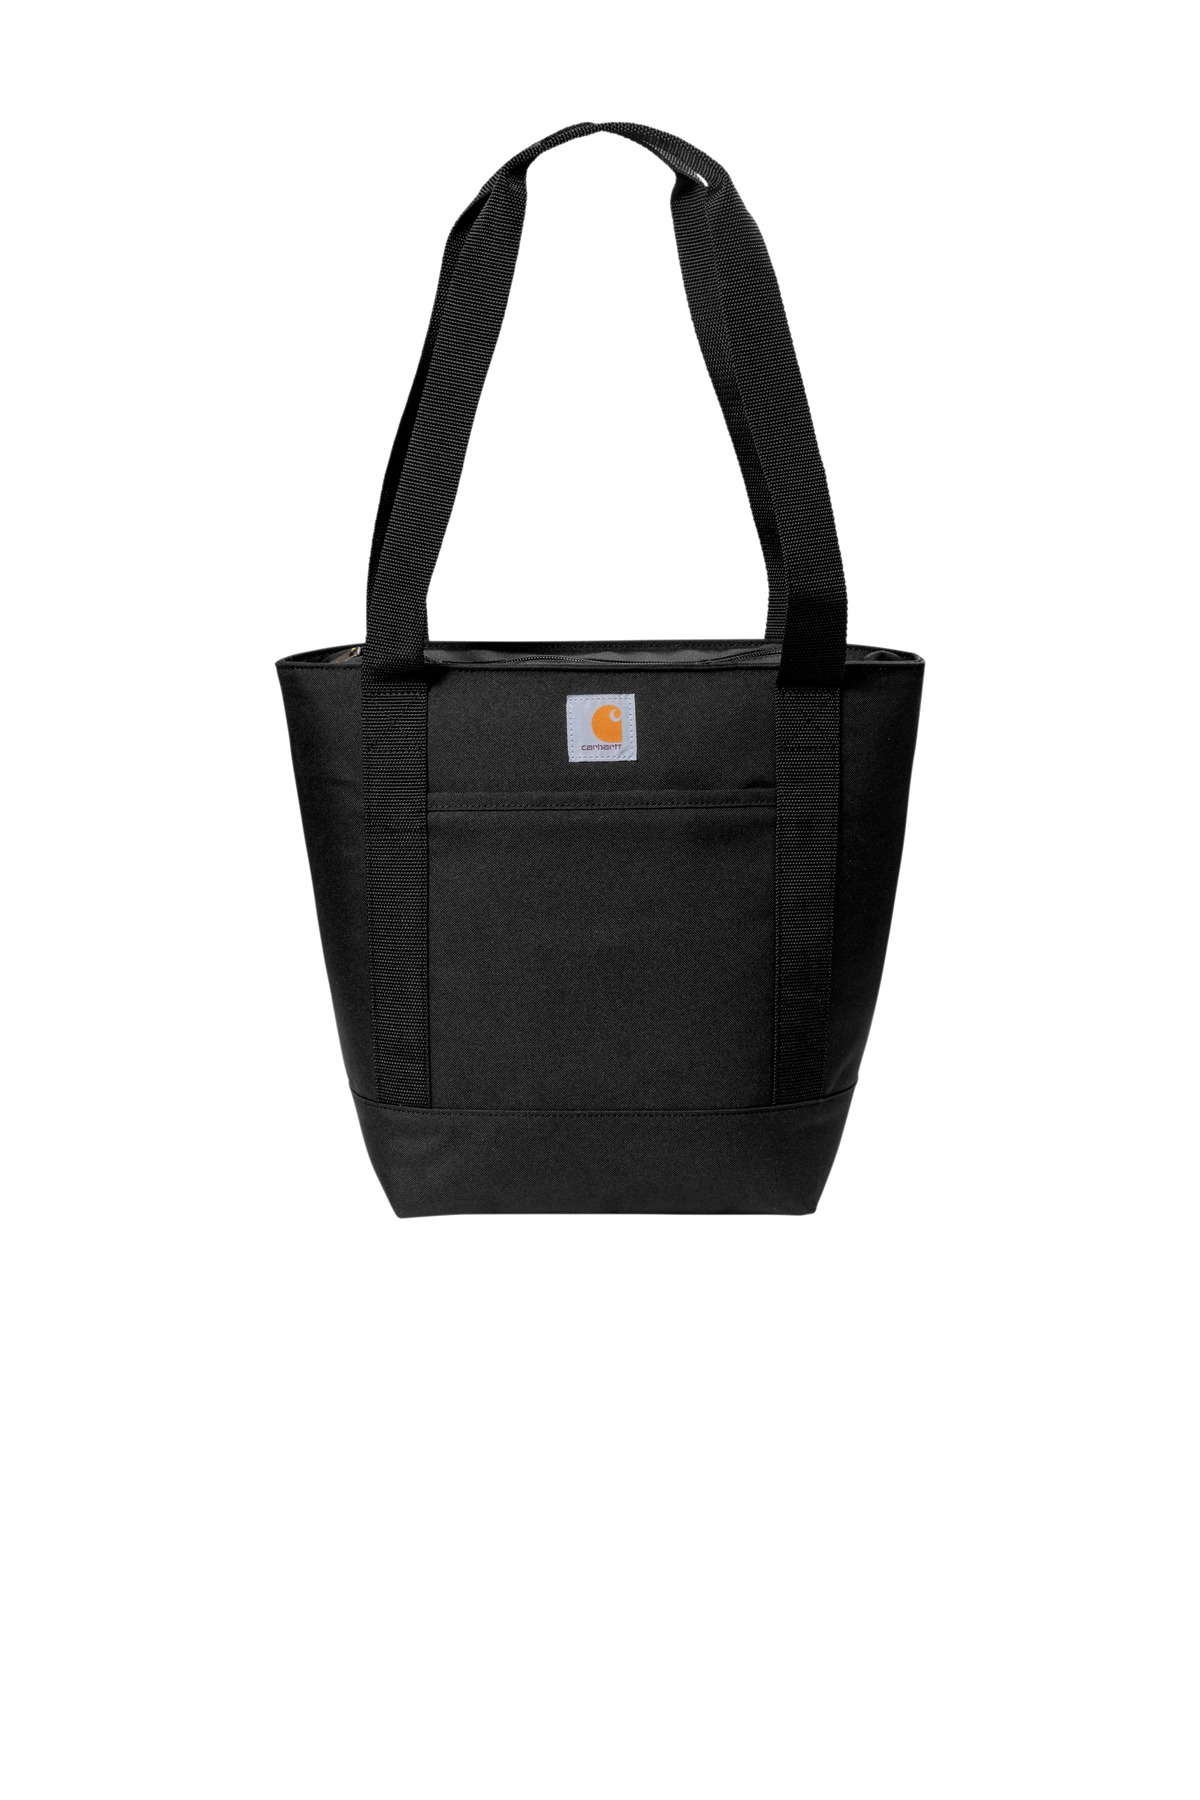 Carhartt ®   Tote 18-Can Cooler. CT89101701 - Black